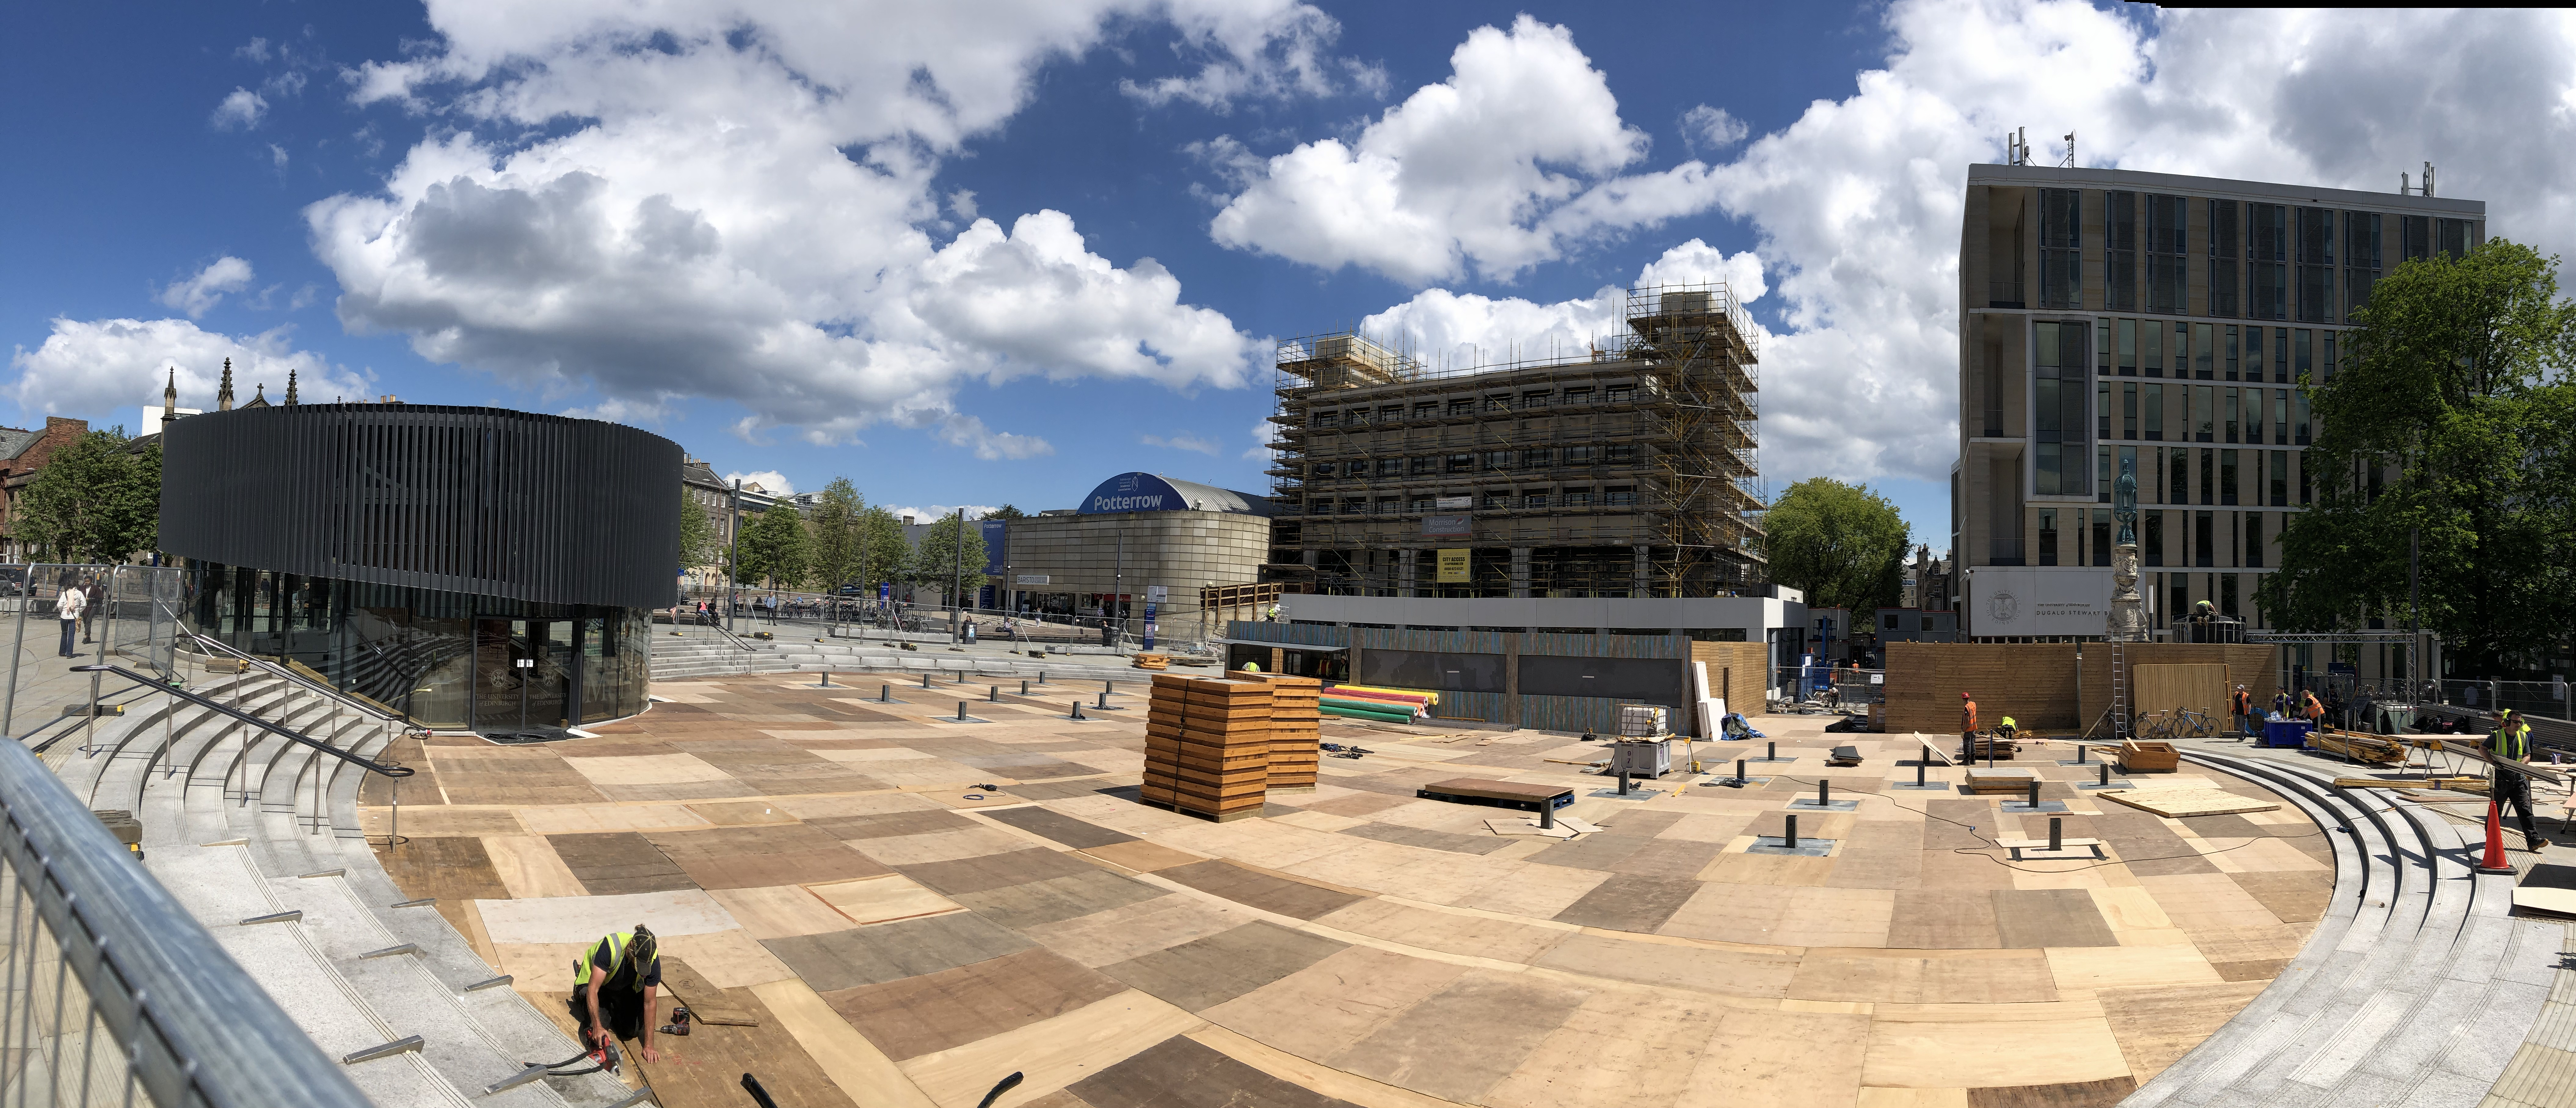 Bristo Square panorama on a sunny day, with wooden boarding being installed across the entire central area, along with small wooden buildings